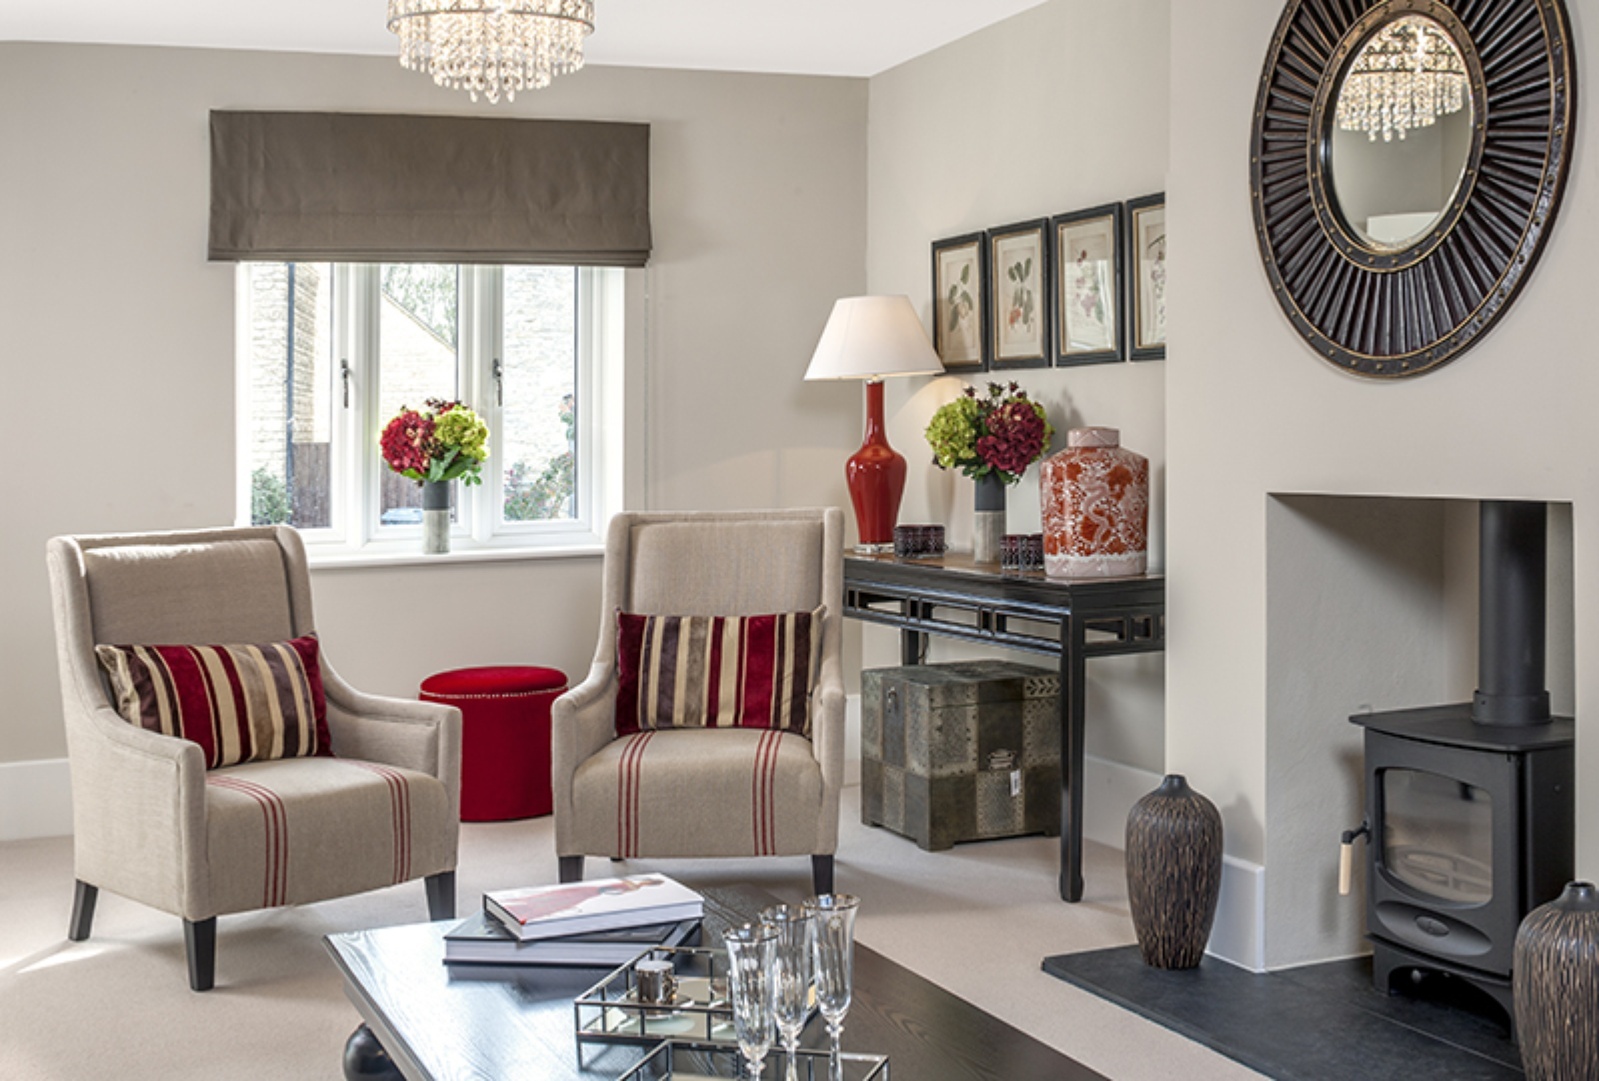 A Rectory Homes showhome